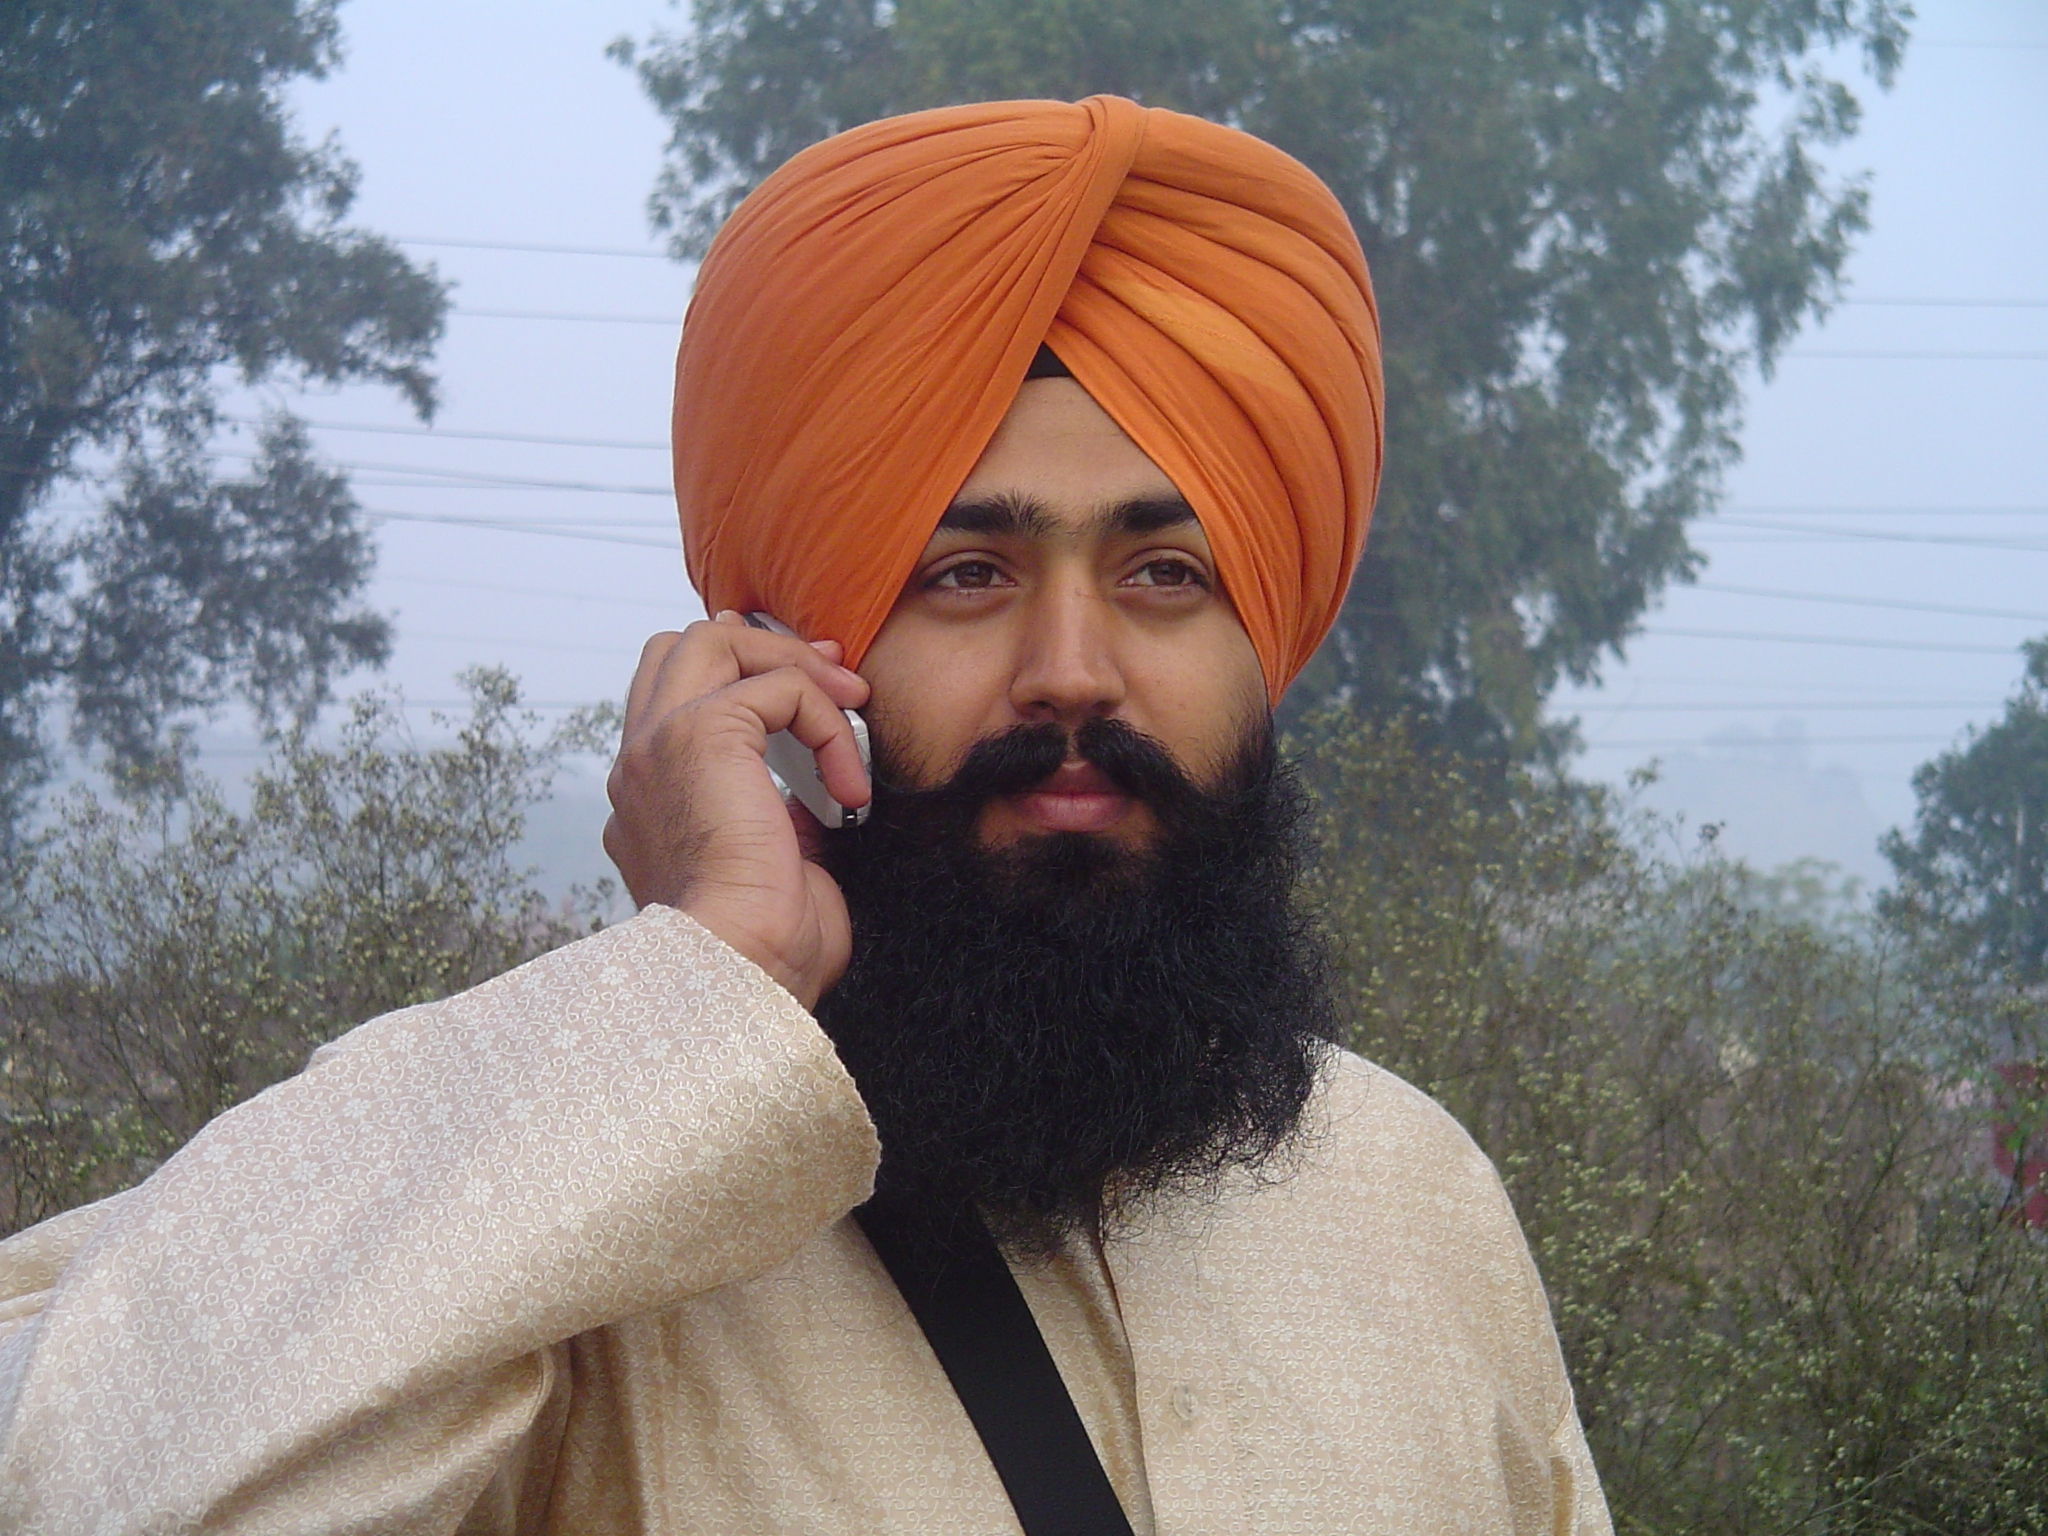 File:Sikh wearing turban.jpg - Wikimedia Commons